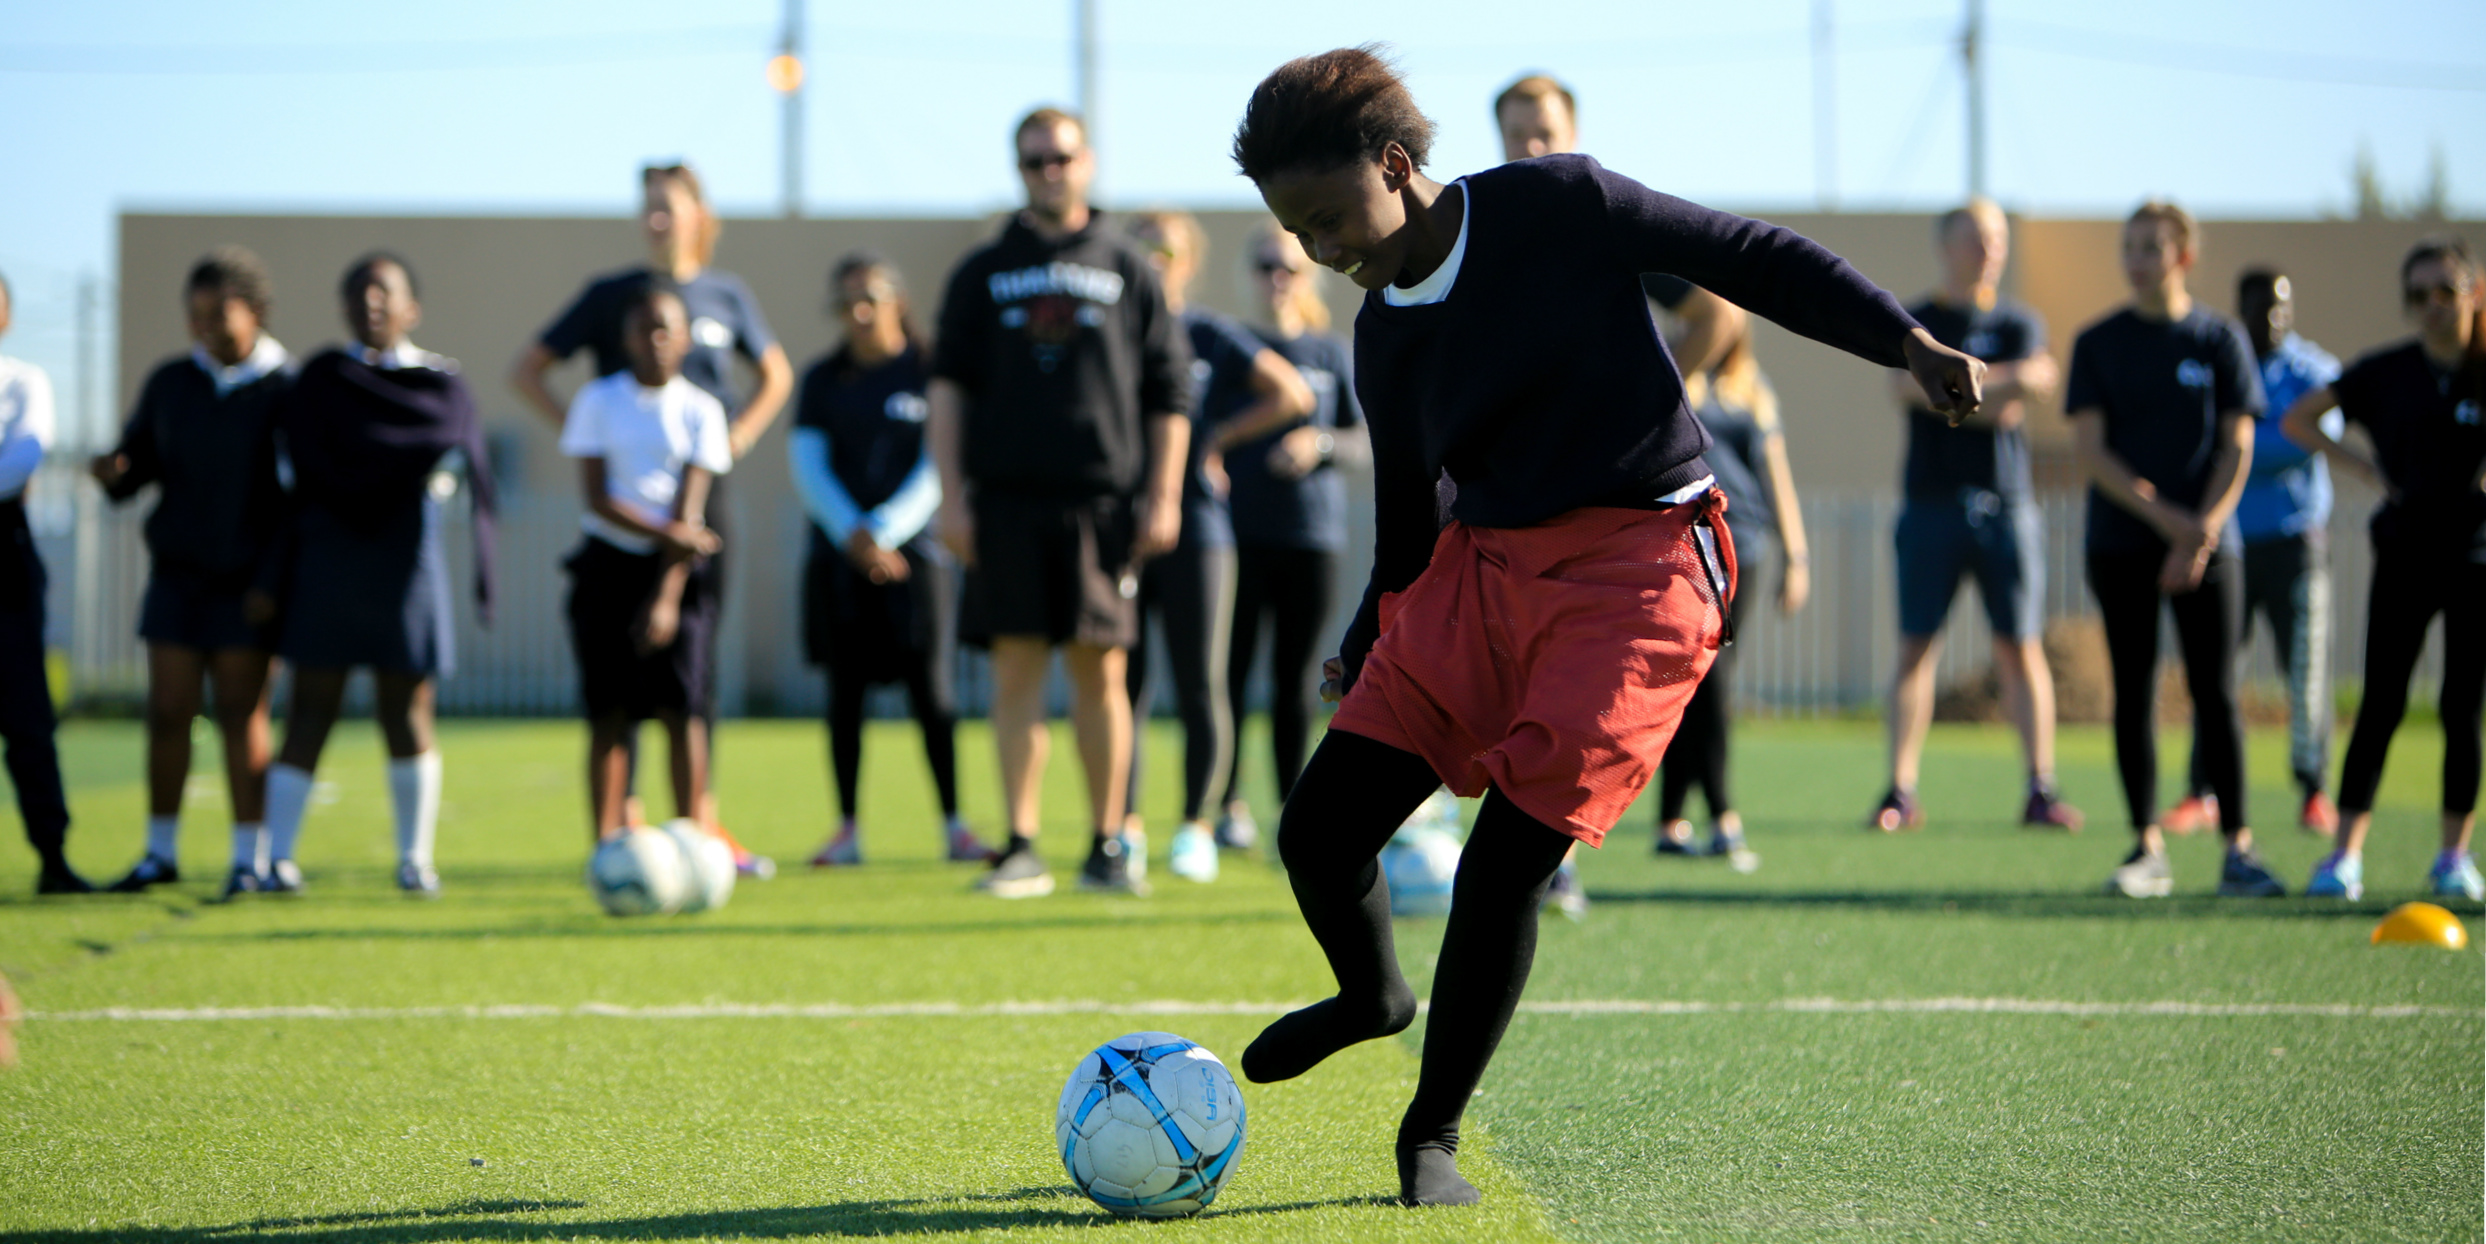 A girl goes in to kick a soccer ball triumphantly. As part of activities for women's empowerment, GVI participants facilitate sports lessons with Cape Town youth.